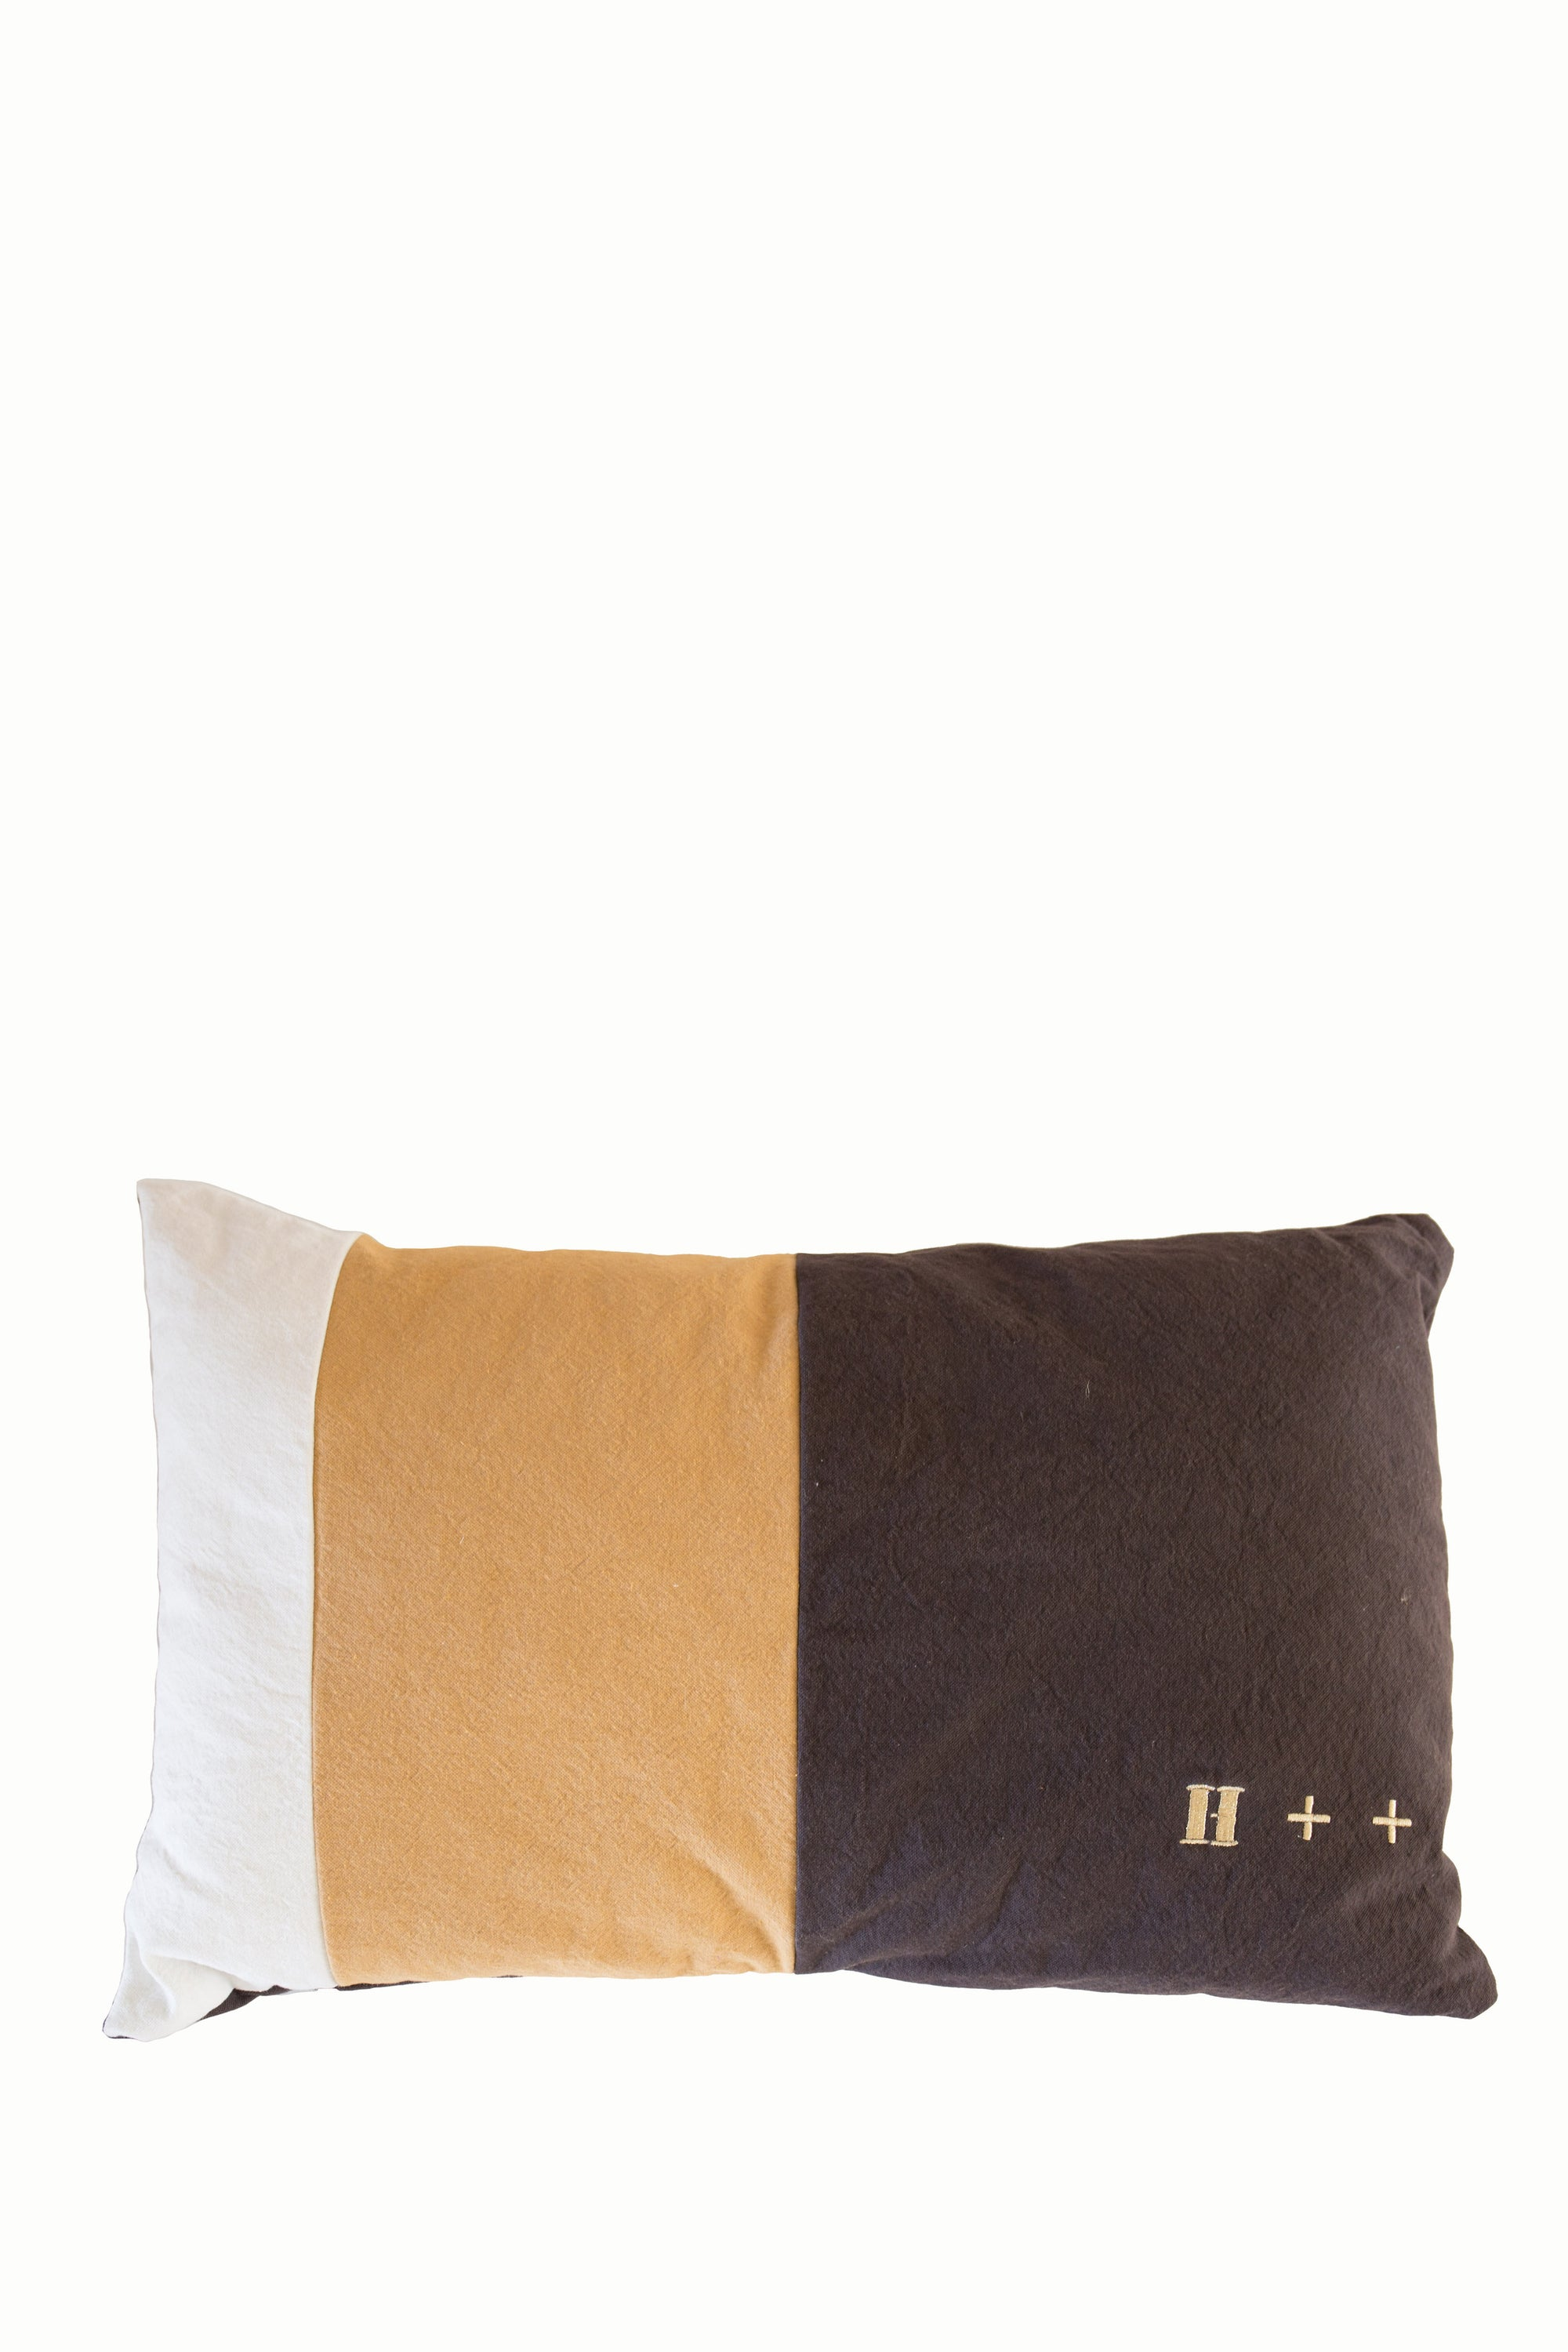 Honore Deco Tri Cushion